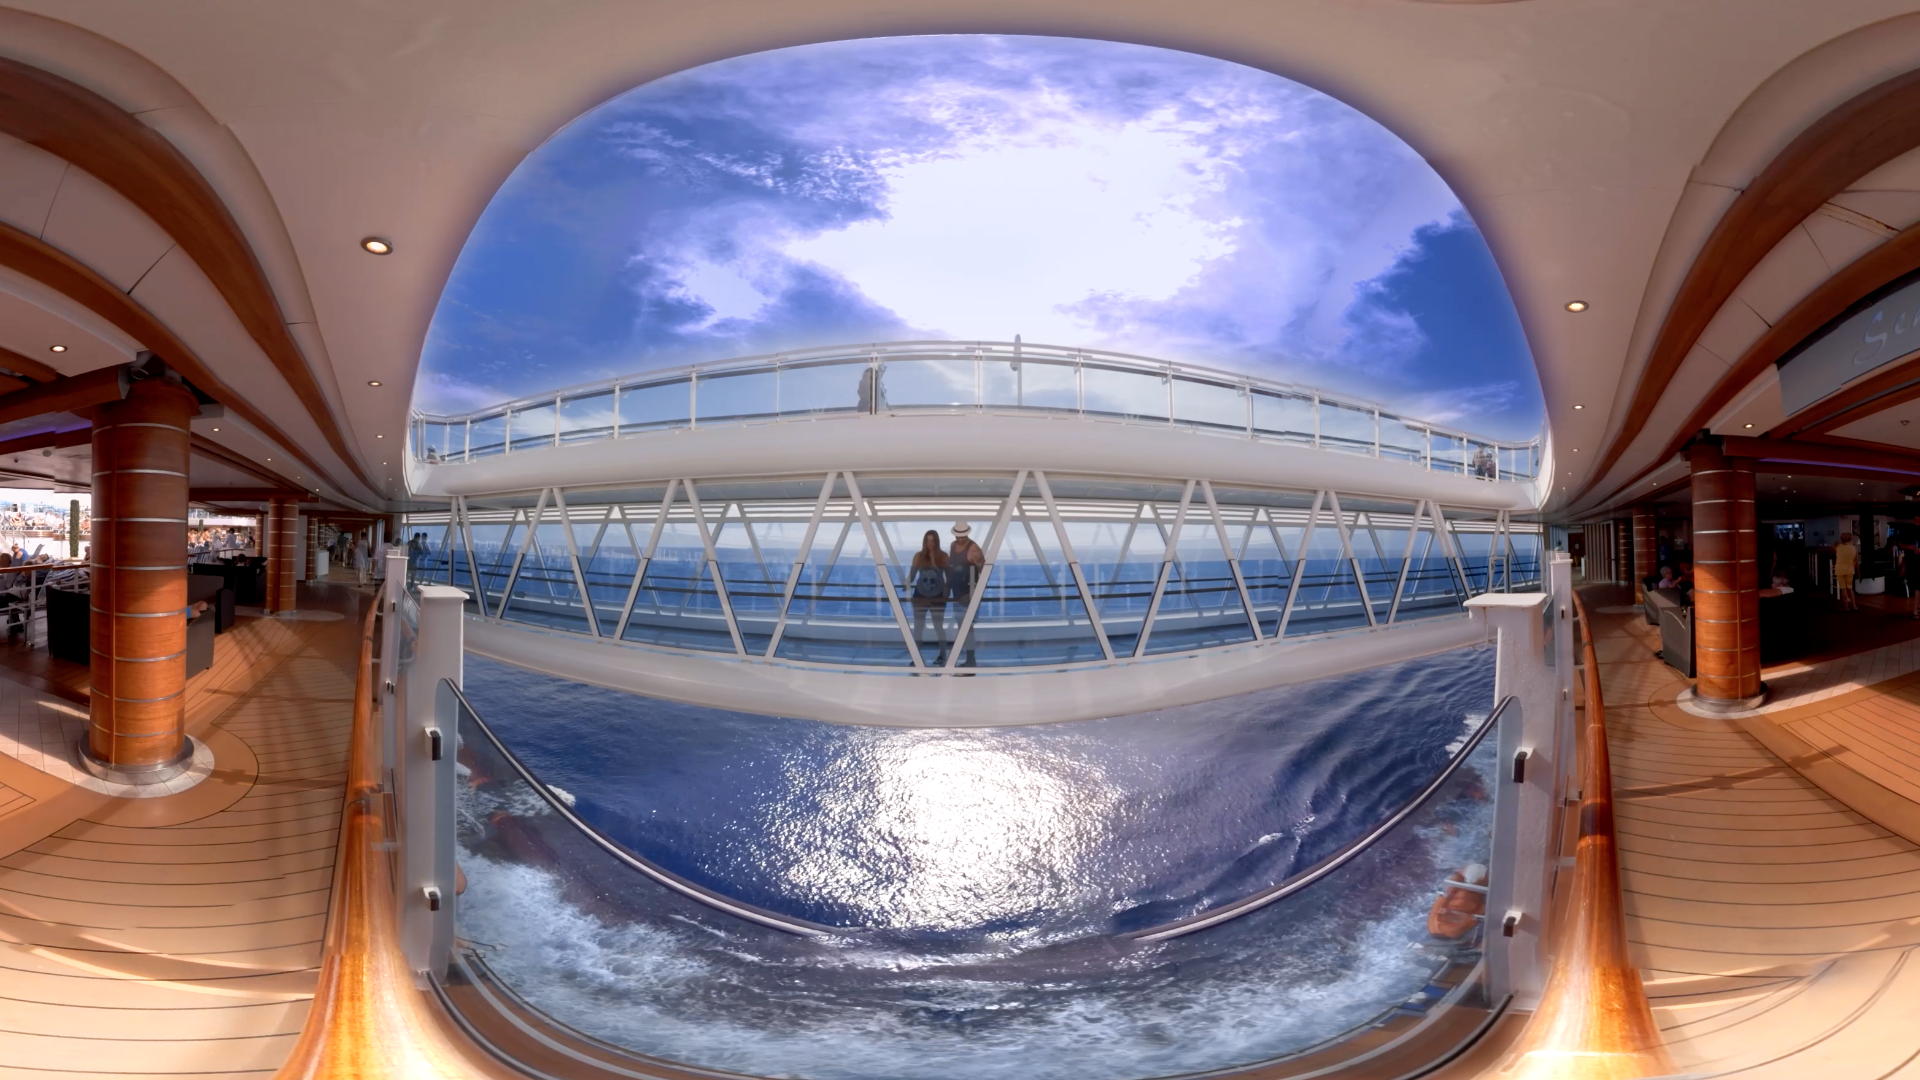 This 360-degree image of the SeaWalk aboard the Regal Princess from our Princess Cruises Line is part of a new virtual reality marketing campaign.